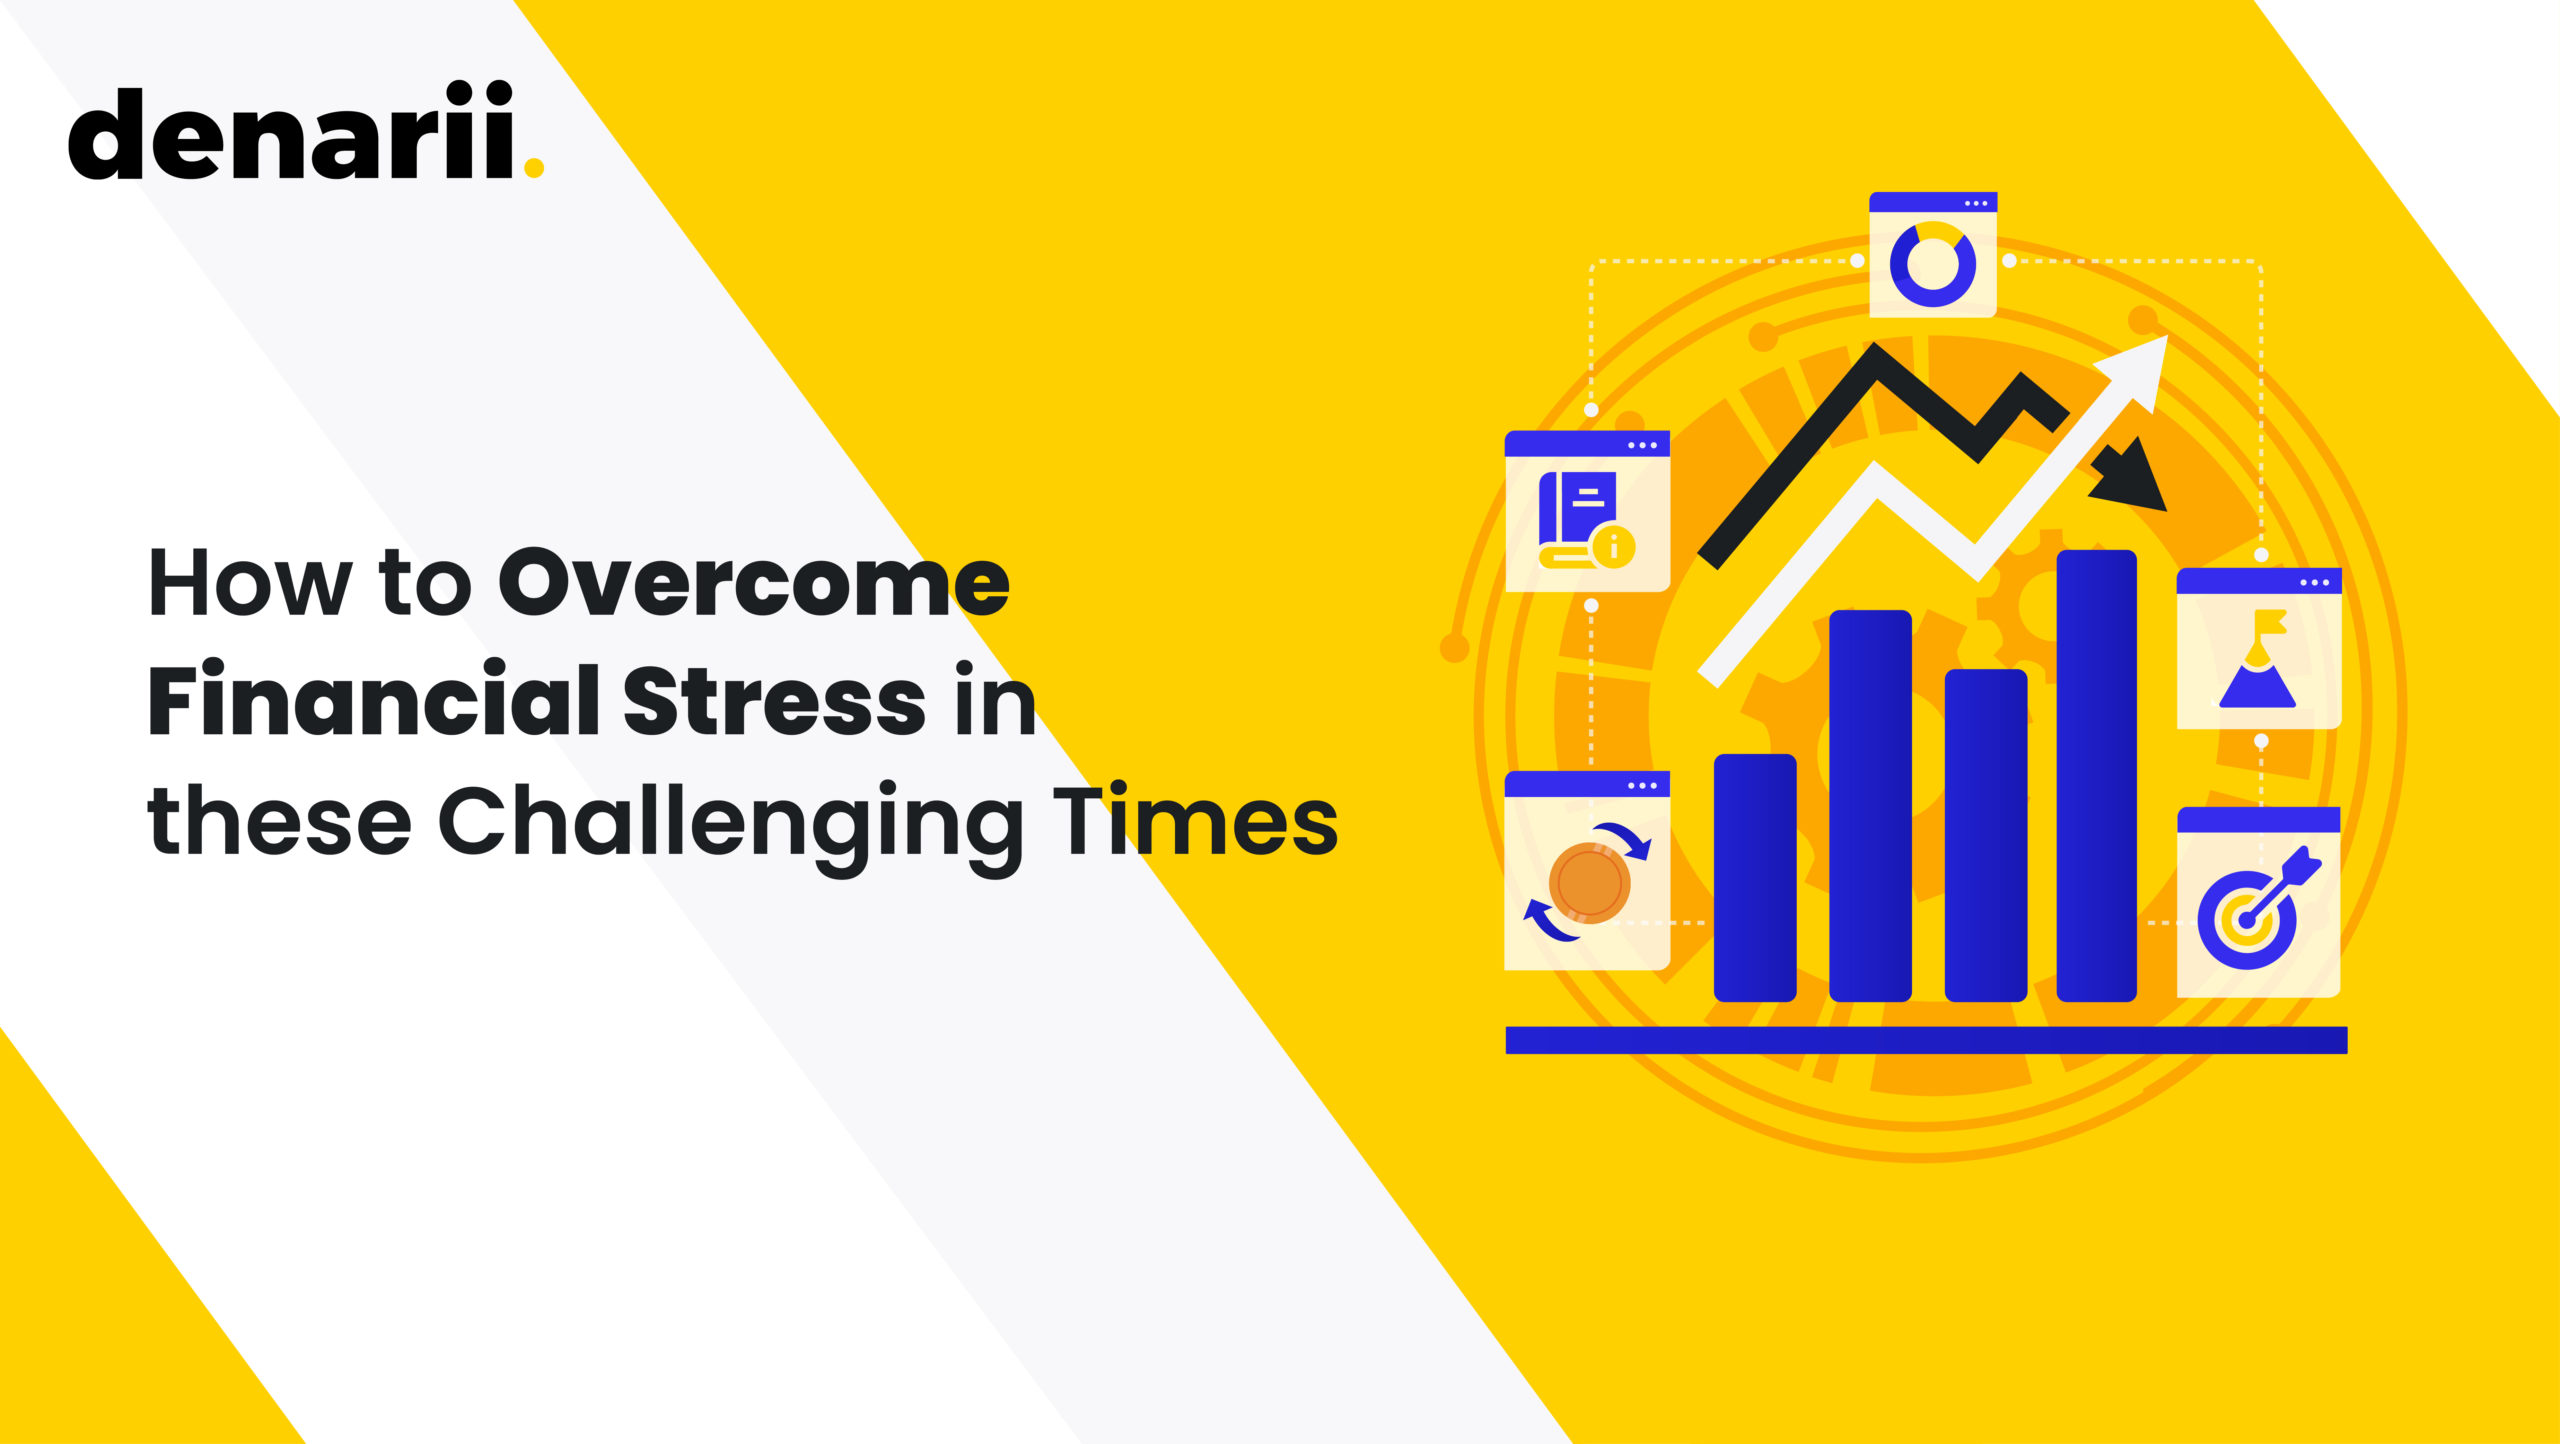 How to Overcome Financial Stress in these Challenging Times